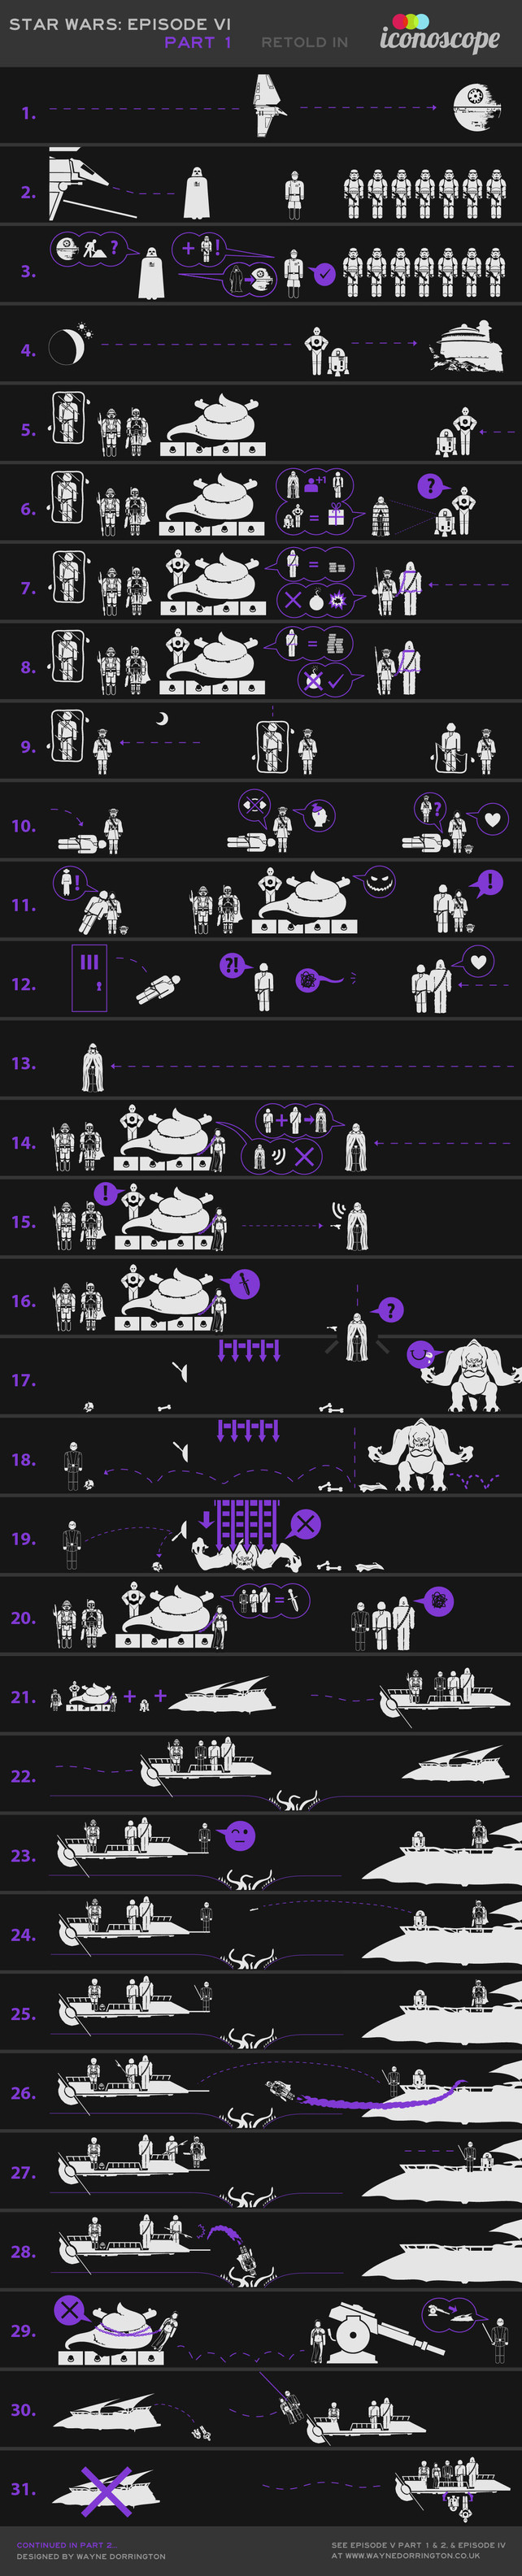 Return of the Jedi, Retold In Icons  INFOGRAPHIC OF THE DAY  BREAKING DOWN THE LAST MOVIE OF THE FIRST STAR WARS TRILOGY TELLS YOU A LOT ABOUT WHAT MADE IT INFERIOR TO THE FIRST TWO.